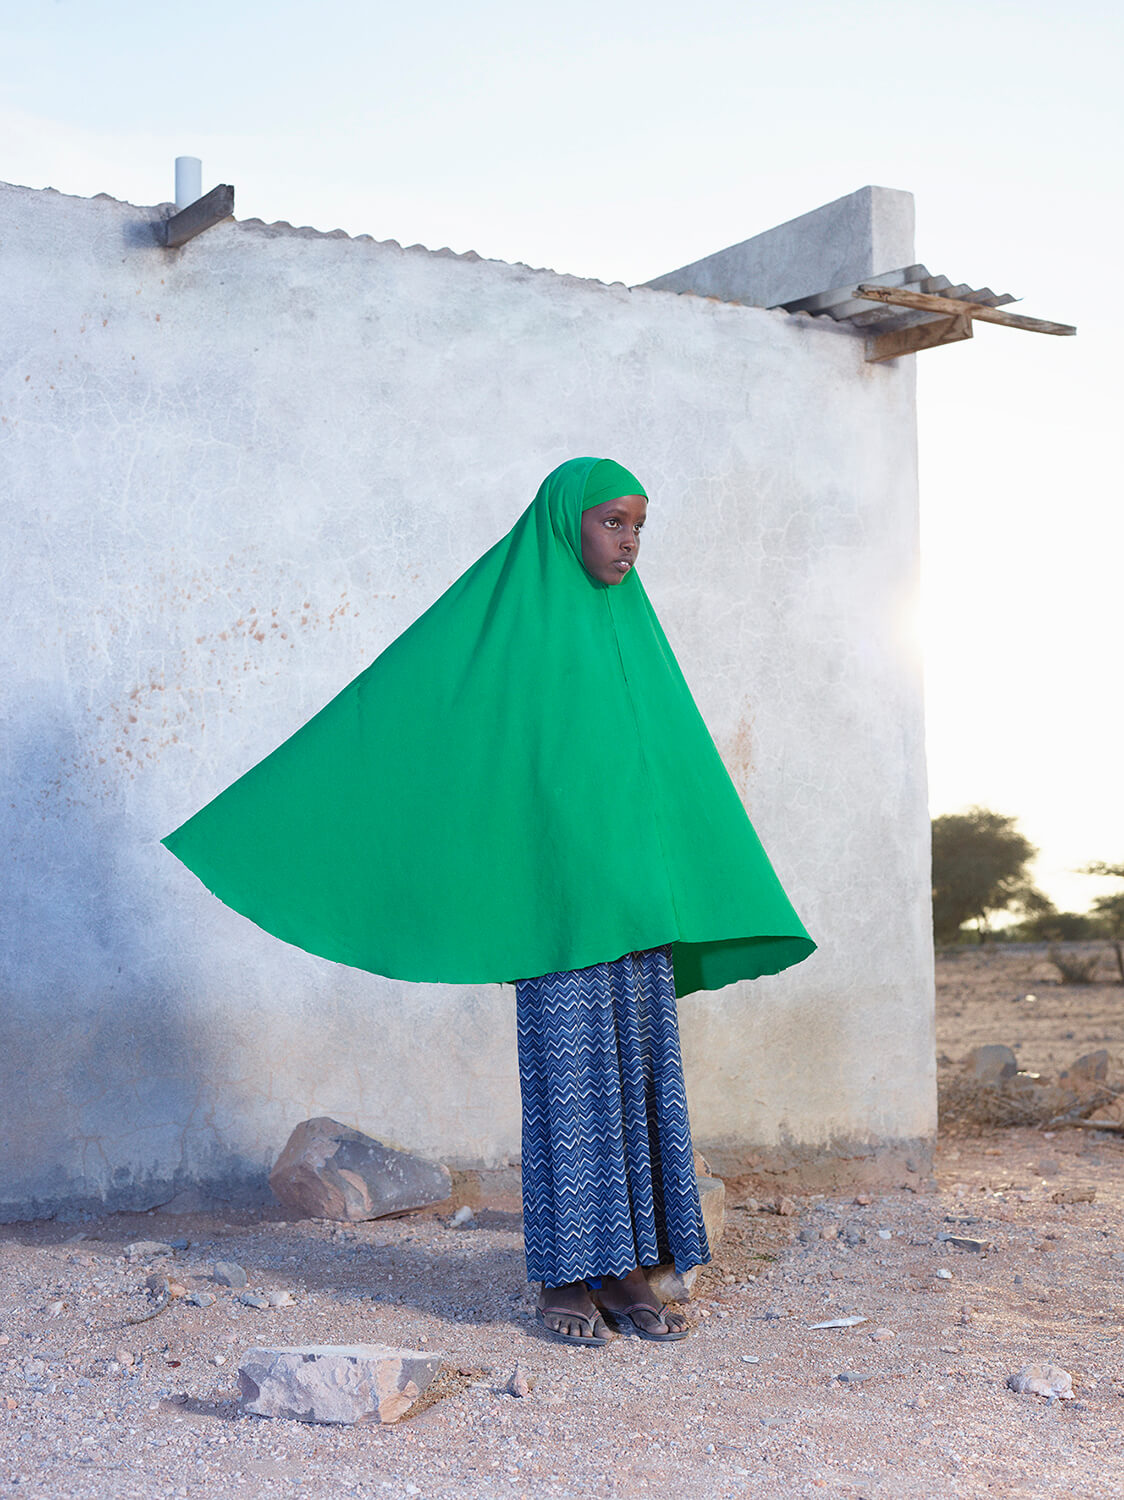 Ayan at the IDP camp in Gargara, Somaliland, from the series Dryland_Felicity McCabe the south west collective of photography